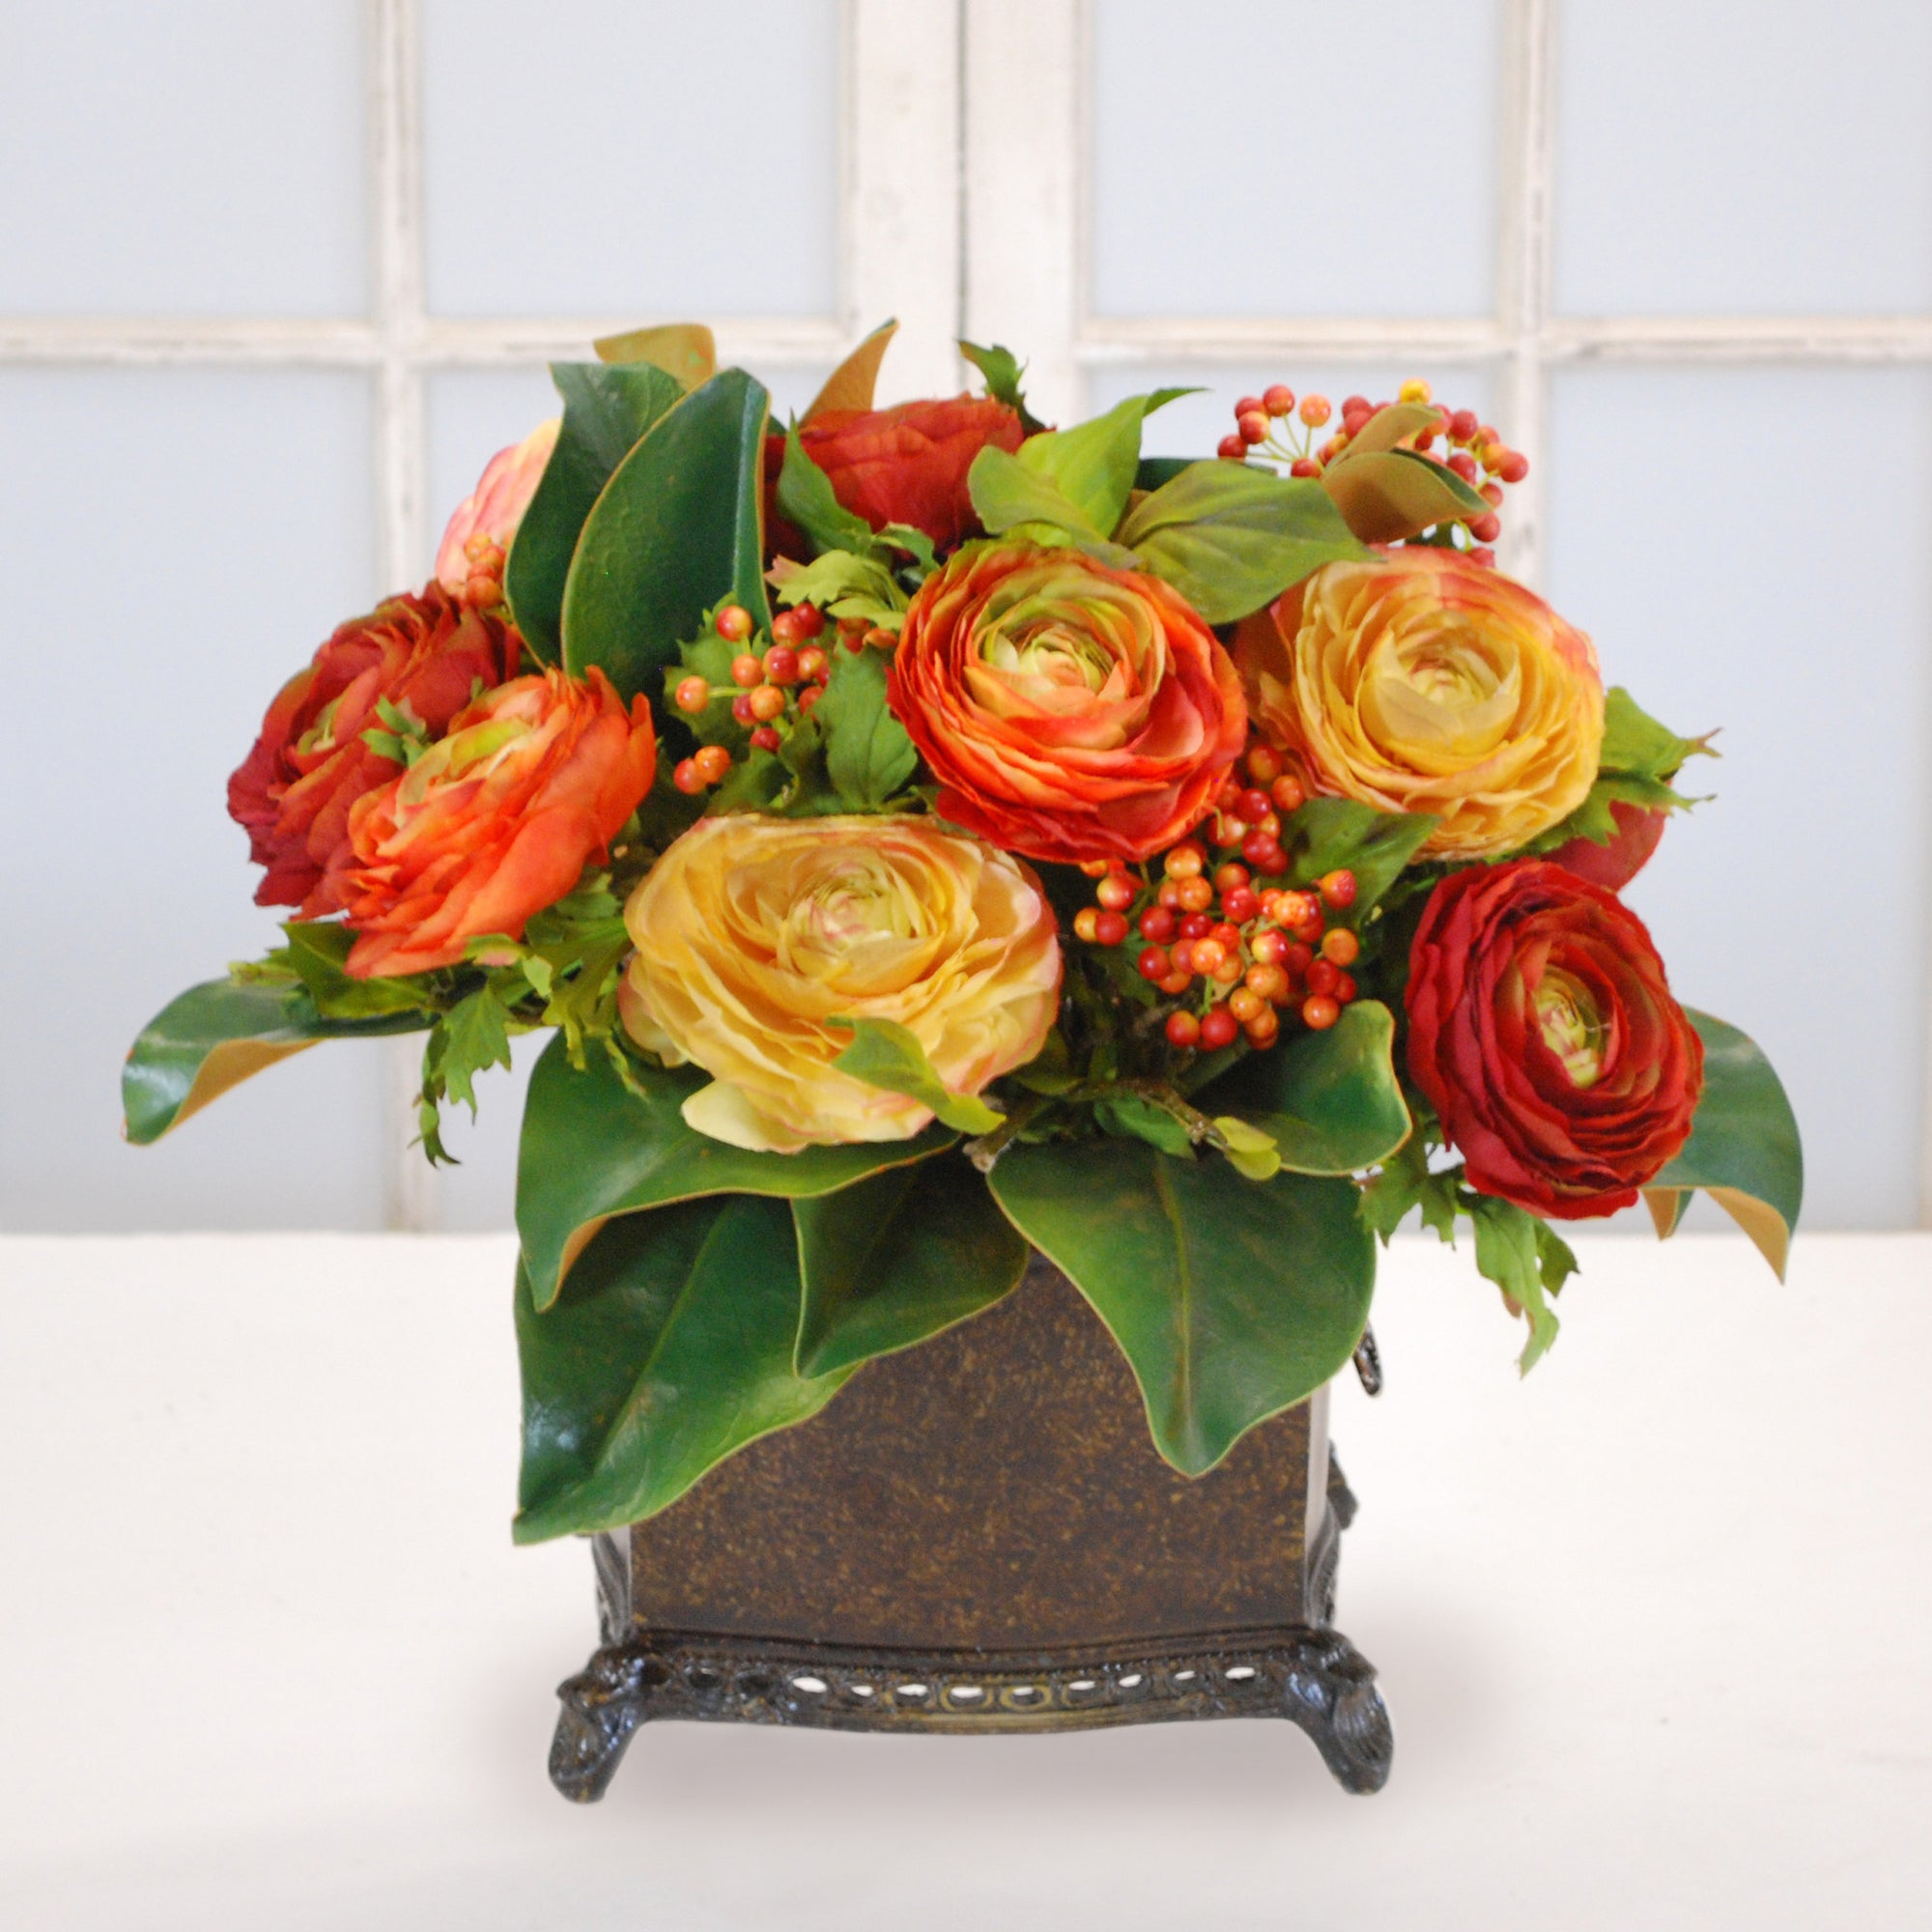 MIX RANUNCULUS IN BROWN PLANTER (WHD025-MI) - Winward Home faux floral arrangements